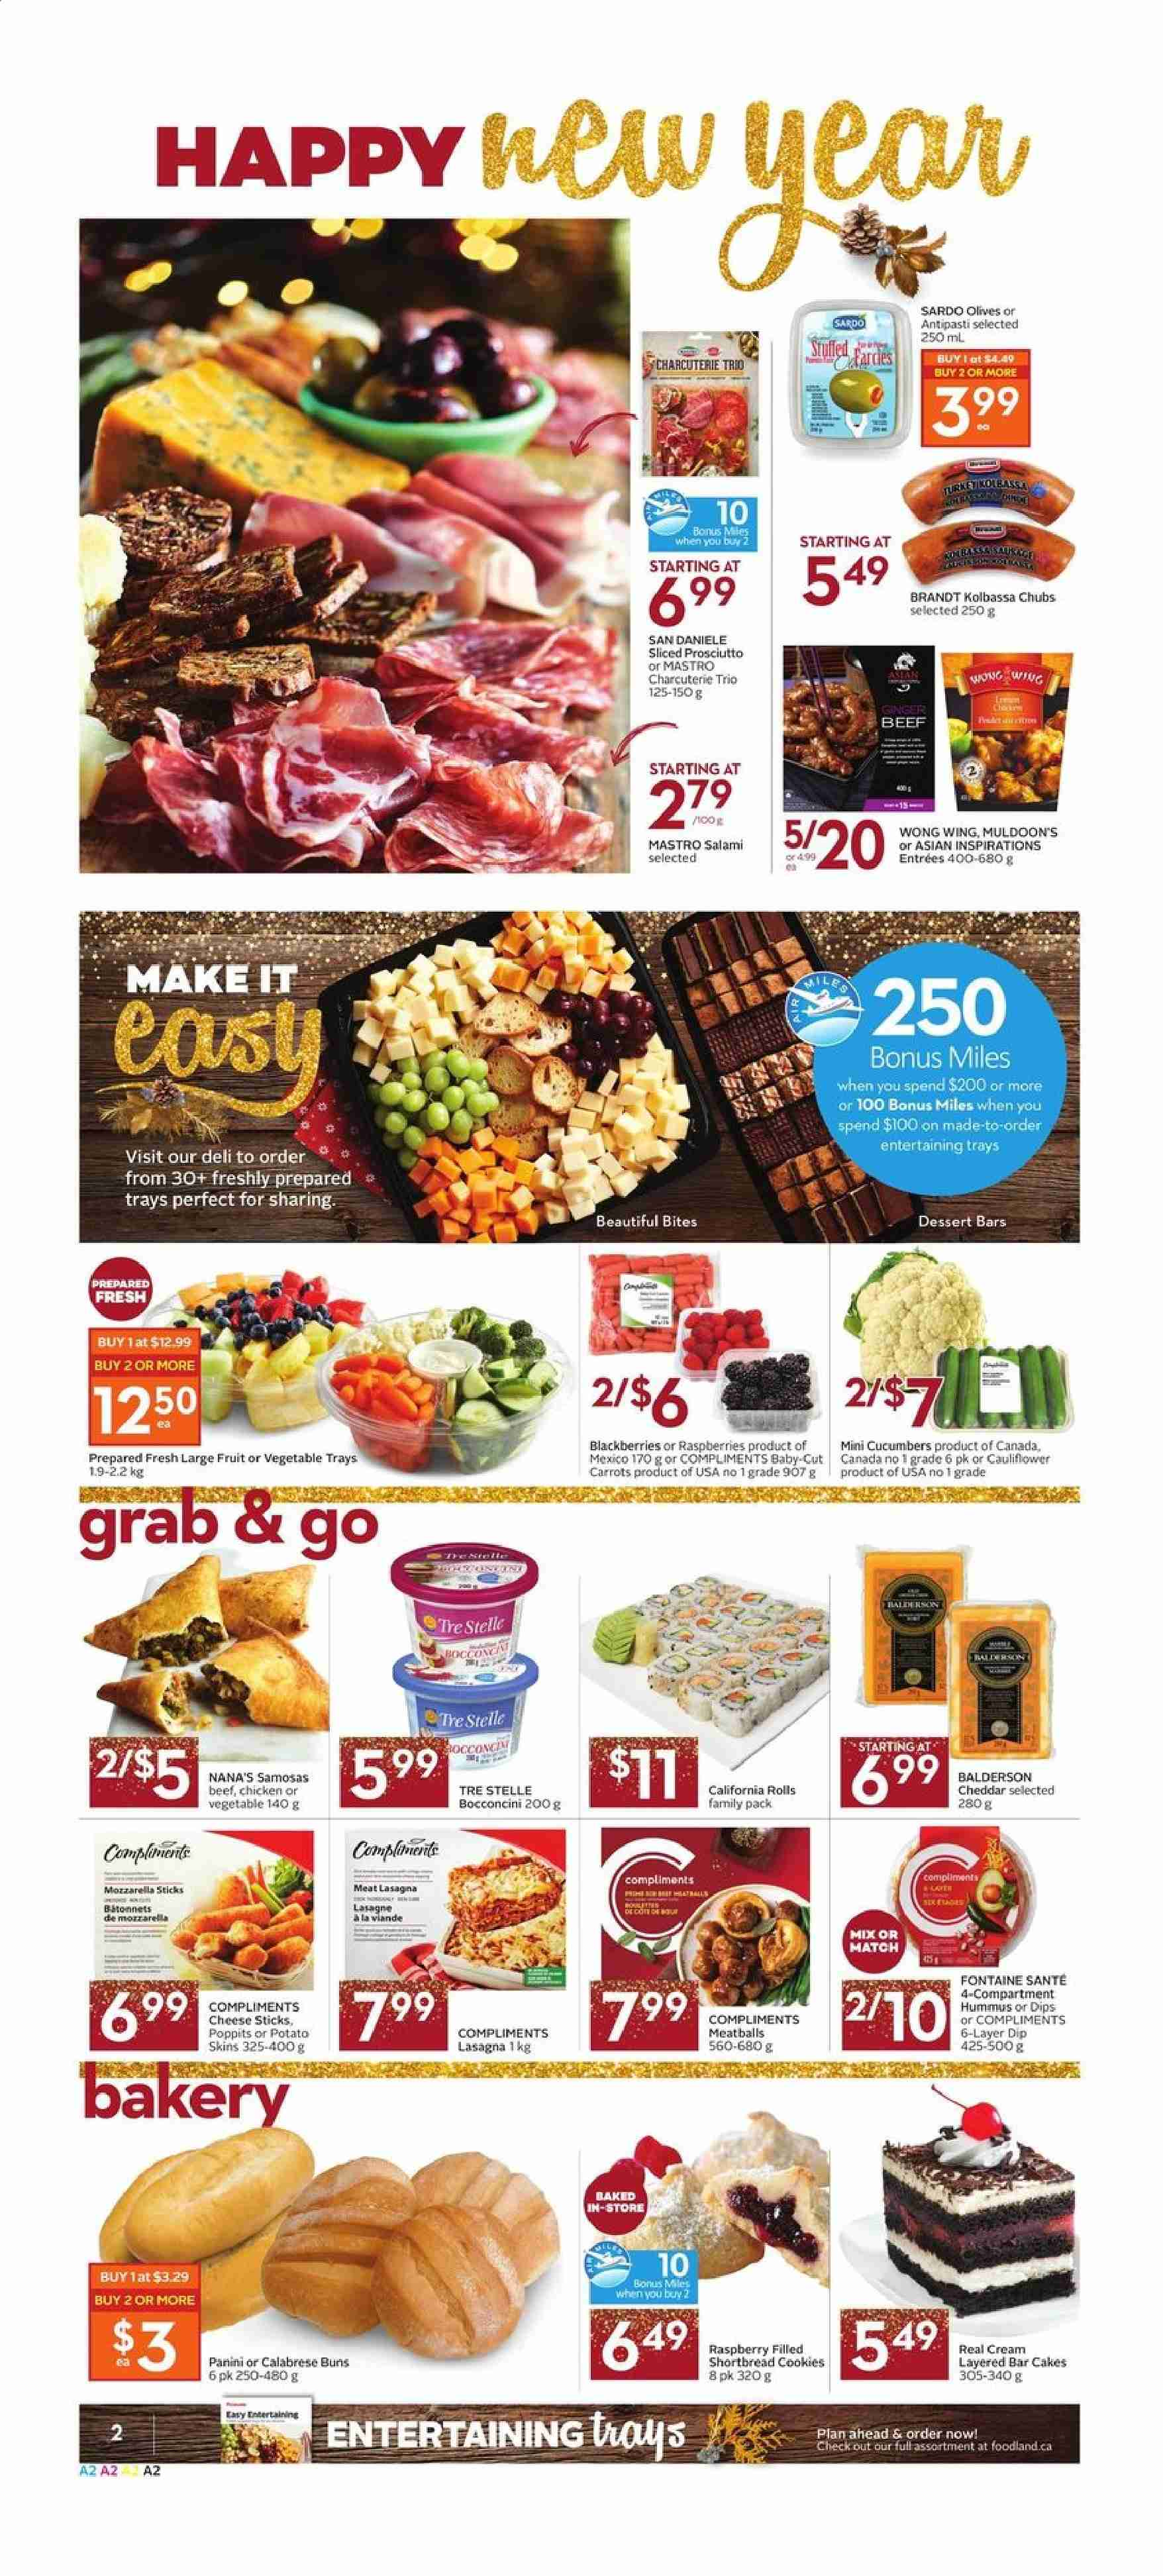 Foodland Flyer  - December 26, 2019 - January 01, 2020. Page 2.